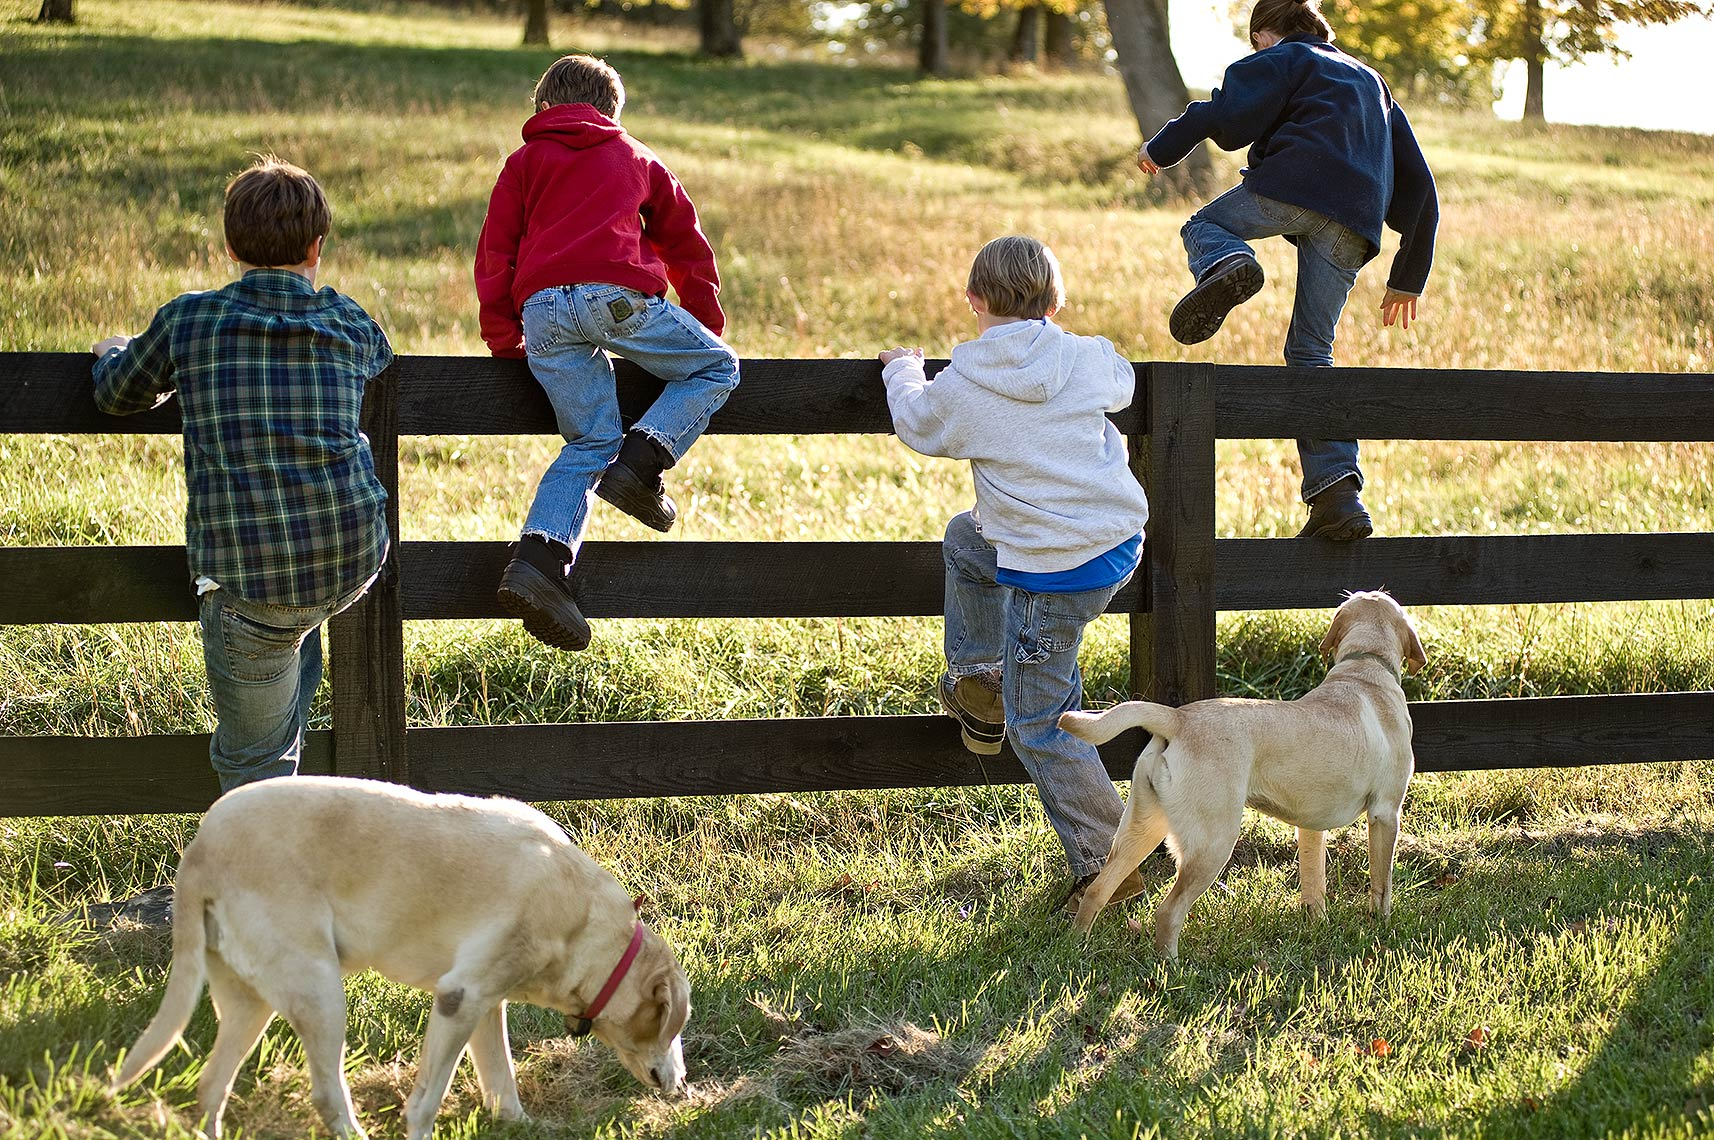 Kids and Dogs Playing on the Farm